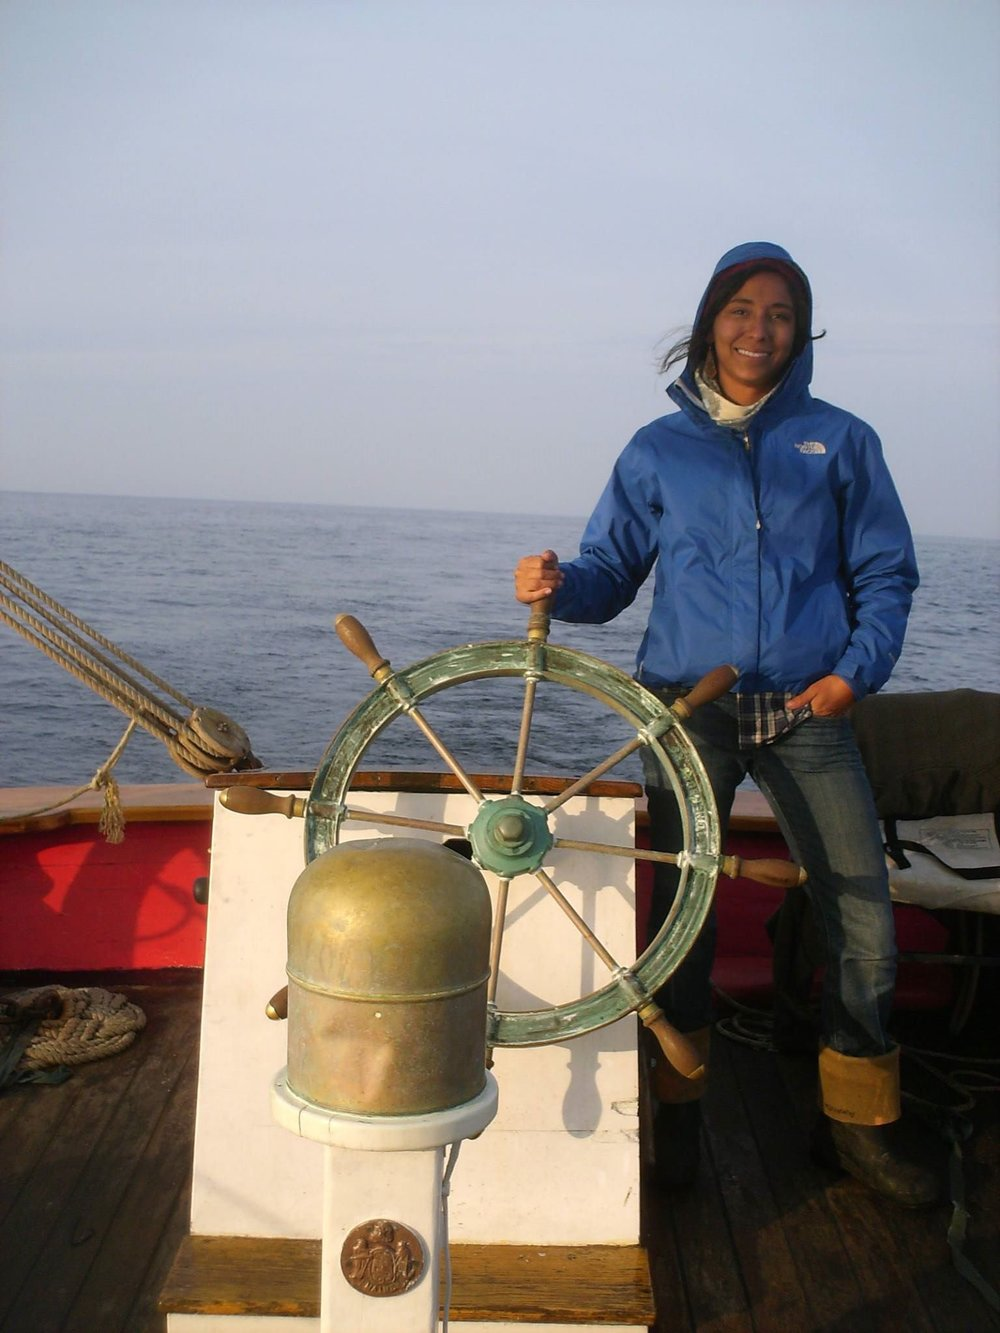 Sailing With NOAA... - The life of working on a schooner was exciting, but it wasn't the most profitable. Amanda then fell back on her Biology degree and began working with NOAA and the National Marine Fisheries Service as an At-Sea Monitor.  This job demanded her to be at sea from 1-9 days aboard active ground fishing vessels monitoring the daily interactions of the fisherman with marine life.  This included documenting, quantifying and speciating every organism that landed on deck of these fishing boats.  This life was challenging but stimulating, glorifying the hard and humble life of fisherman and unveiling the creatures of the depths of the cold Northern Atlantic.  In the 2 years she worked for NMFS she would see her fair share of whales, sharks, cod, guts & gulls. After living the irregular life of jumping boat to boat & port to port, Brooks decided to part with NMFS and went back to the laid-back days of sailing aboard both the schooner Appledore and as the First-mate of a new boat out of Kennebunkport, Maine, the Pineapple Ketch. She worked the summer away hauling lines and educating passengers of marine life and the art of sailing.  Amanda then weighed her options, she could follow the Appledore south to the heat of the Keys once again or she could find something new that kept her in the cold and snow (the latter was what she preferred).  She made one last Southbound delivery aboard the Appledore, then flew back to embark on her new adventure, the art of Dog Mushing.